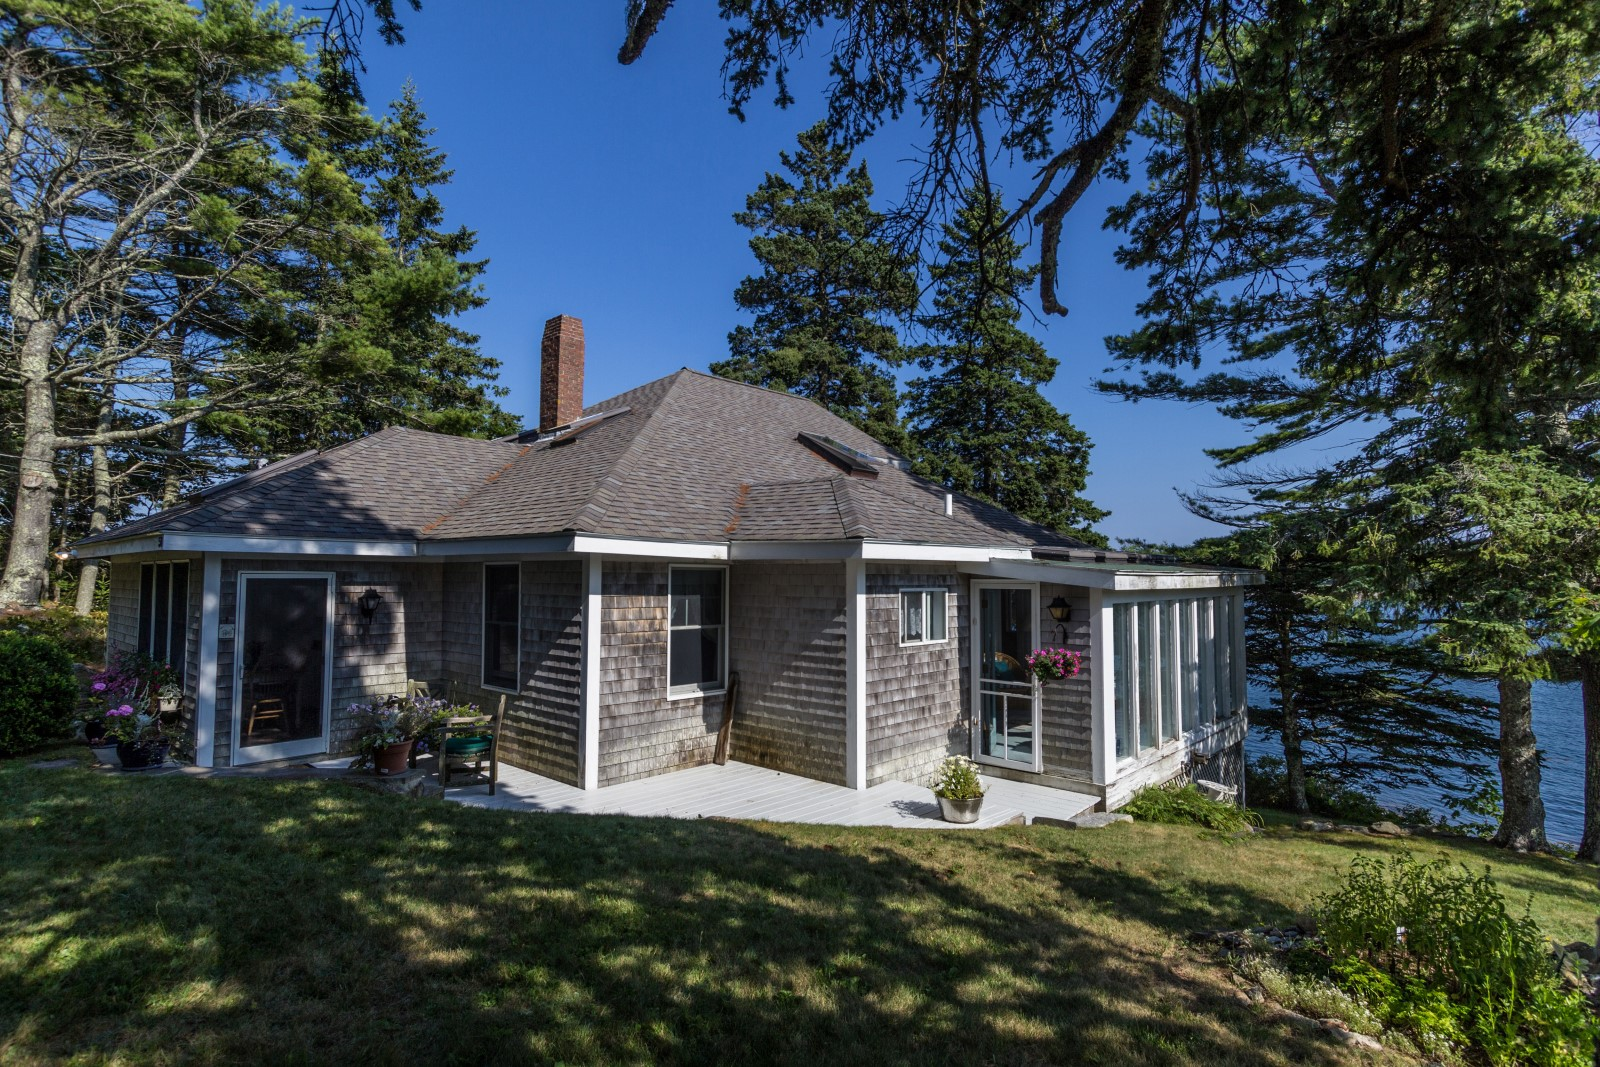 Single Family Home for Sale at Boothbay Harbor Cottage 50 Juniper Point Road Boothbay Harbor, Maine 04538 United States